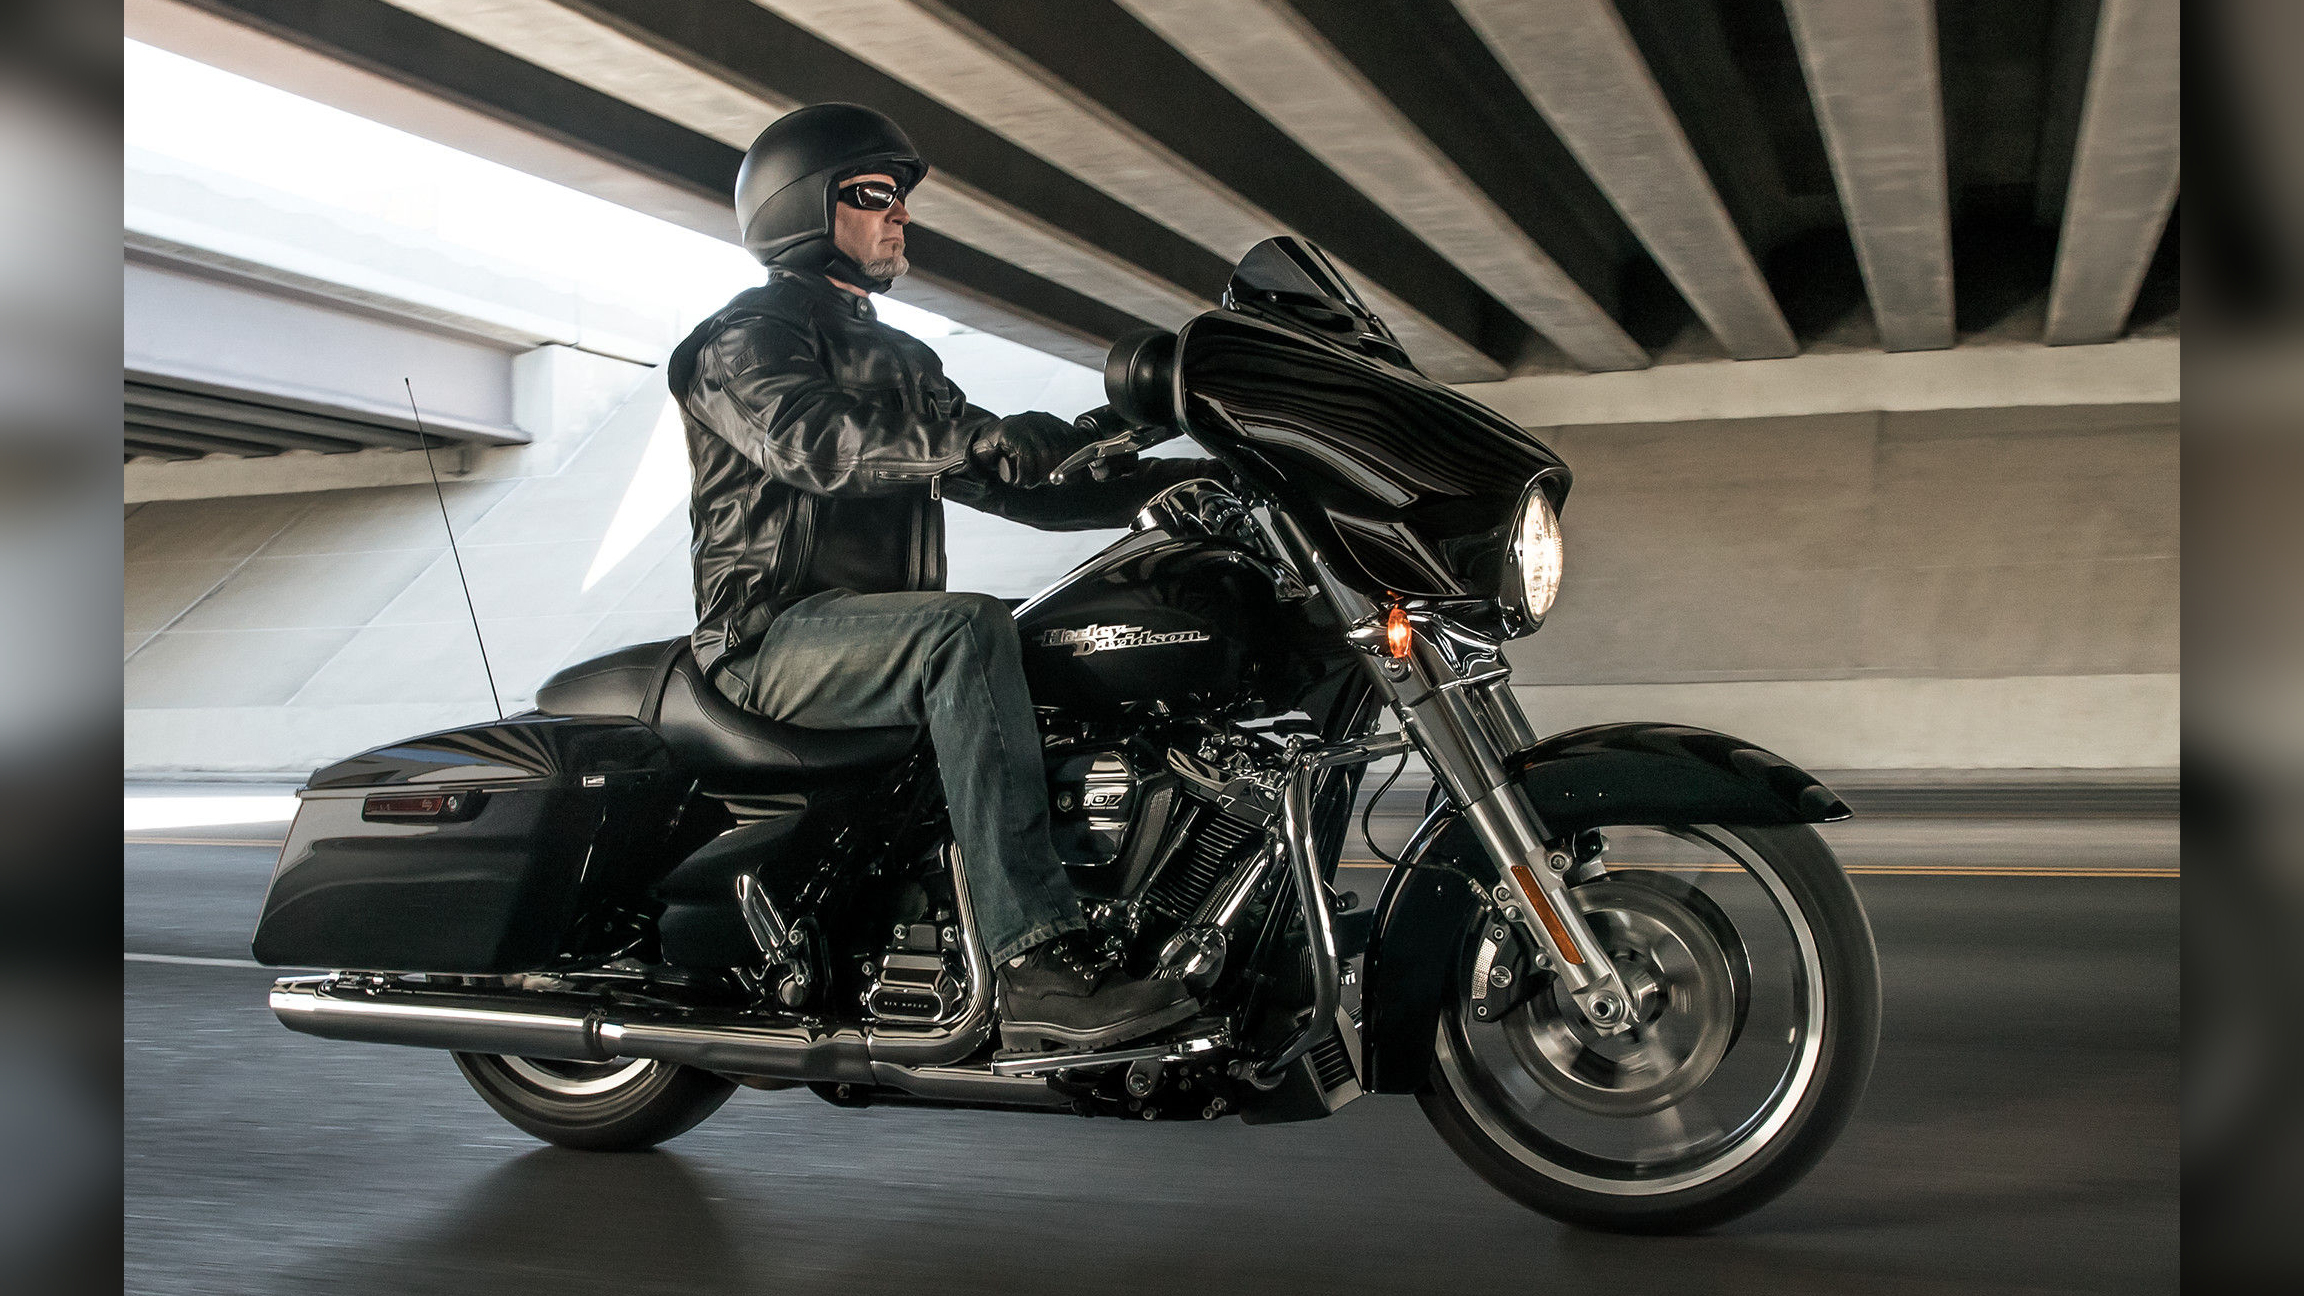 2019 Harley-Davidson CVO Road Glide | Top Speed